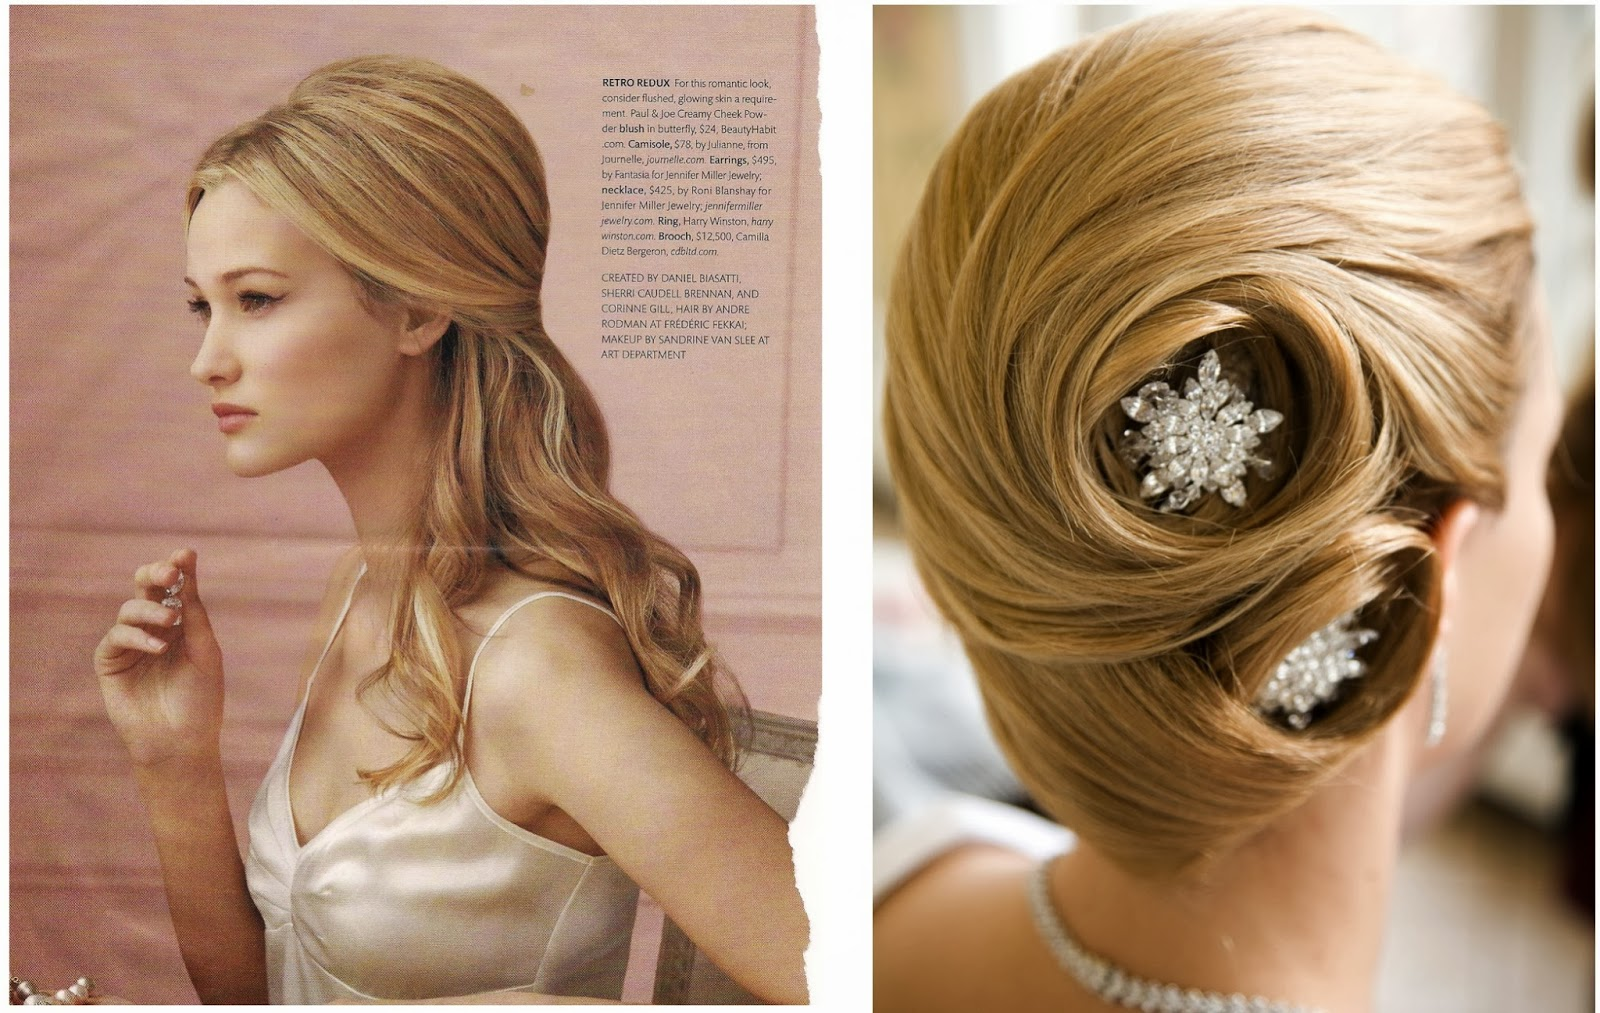 hairstyles for long hair wedding : Hair Fashion Style | COLOR | STYLES ...